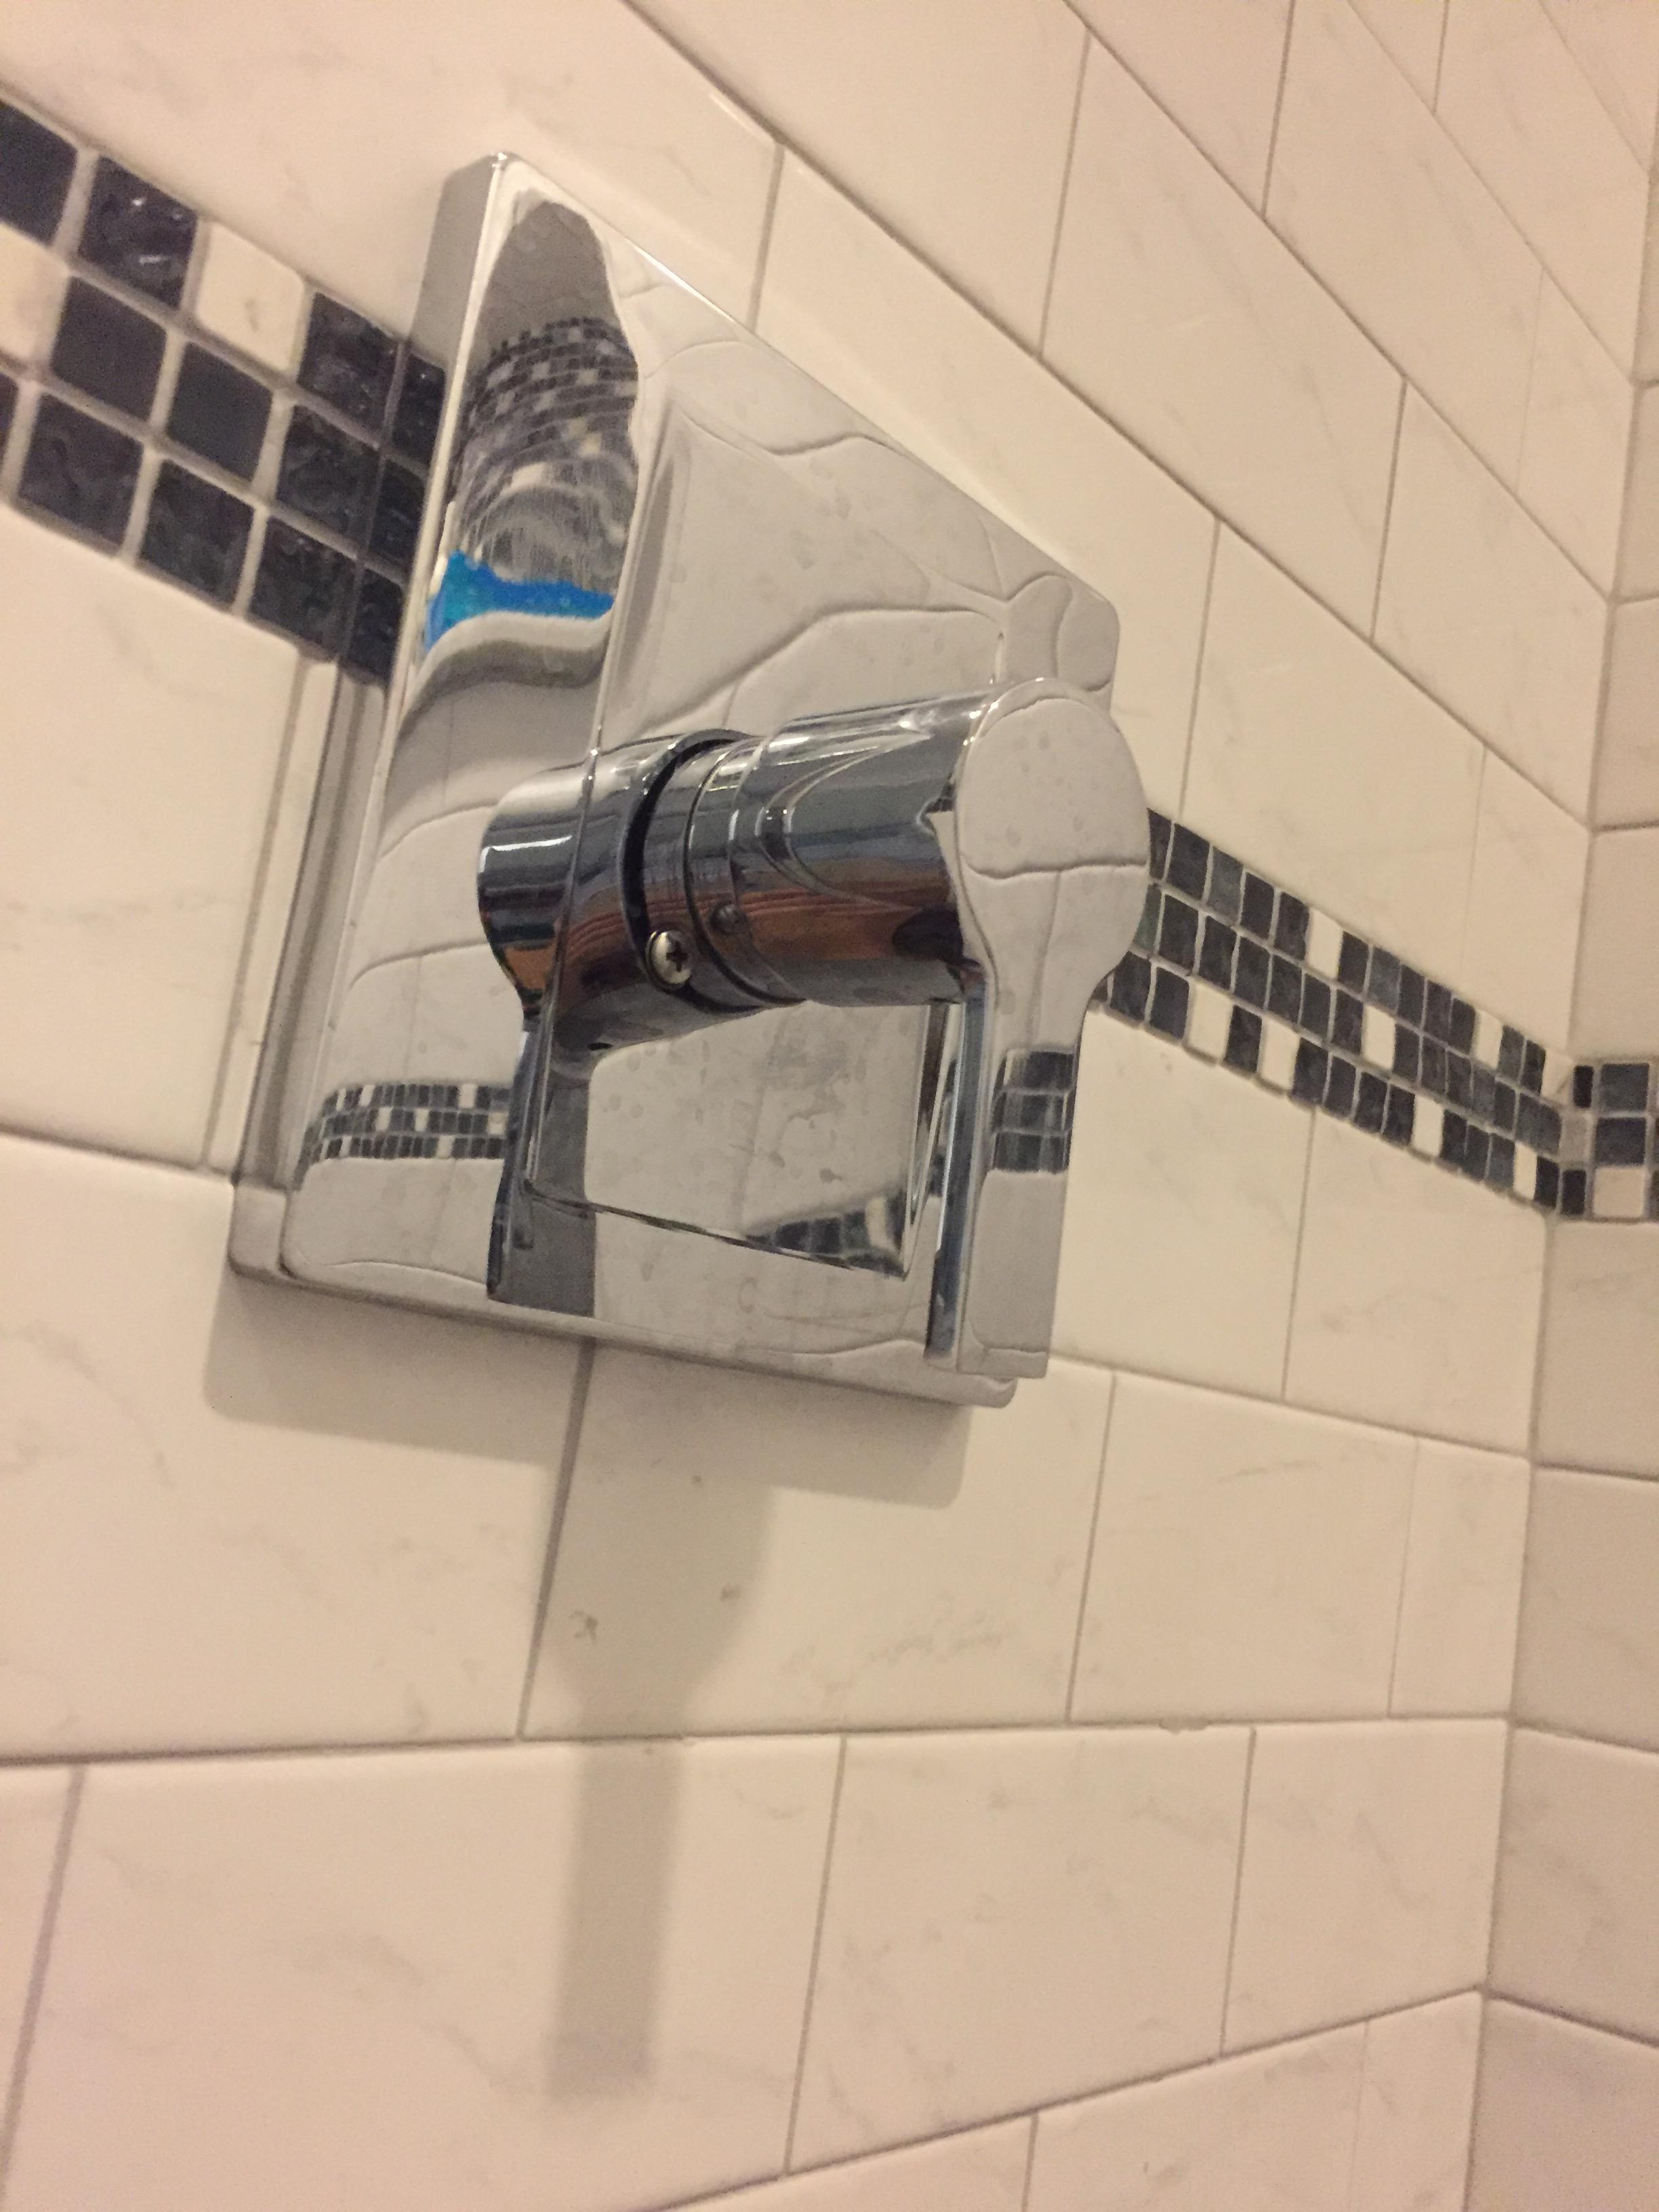 How To Remove This Shower Handle Home Improvement Stack